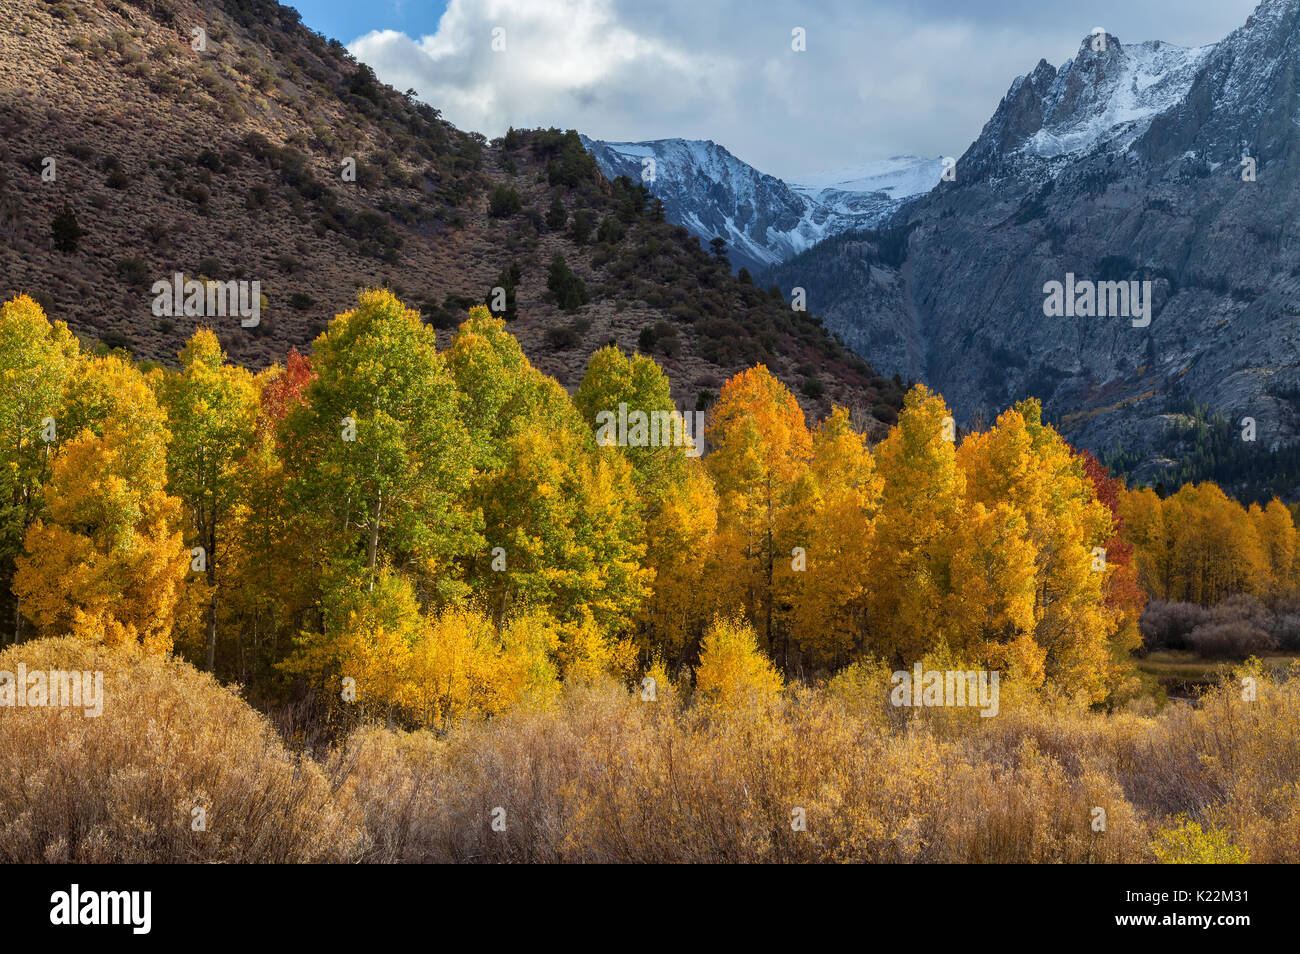 Aspen trees in their fall foliage, Eastern Sierra Nevada Mountains, California. - Stock Image